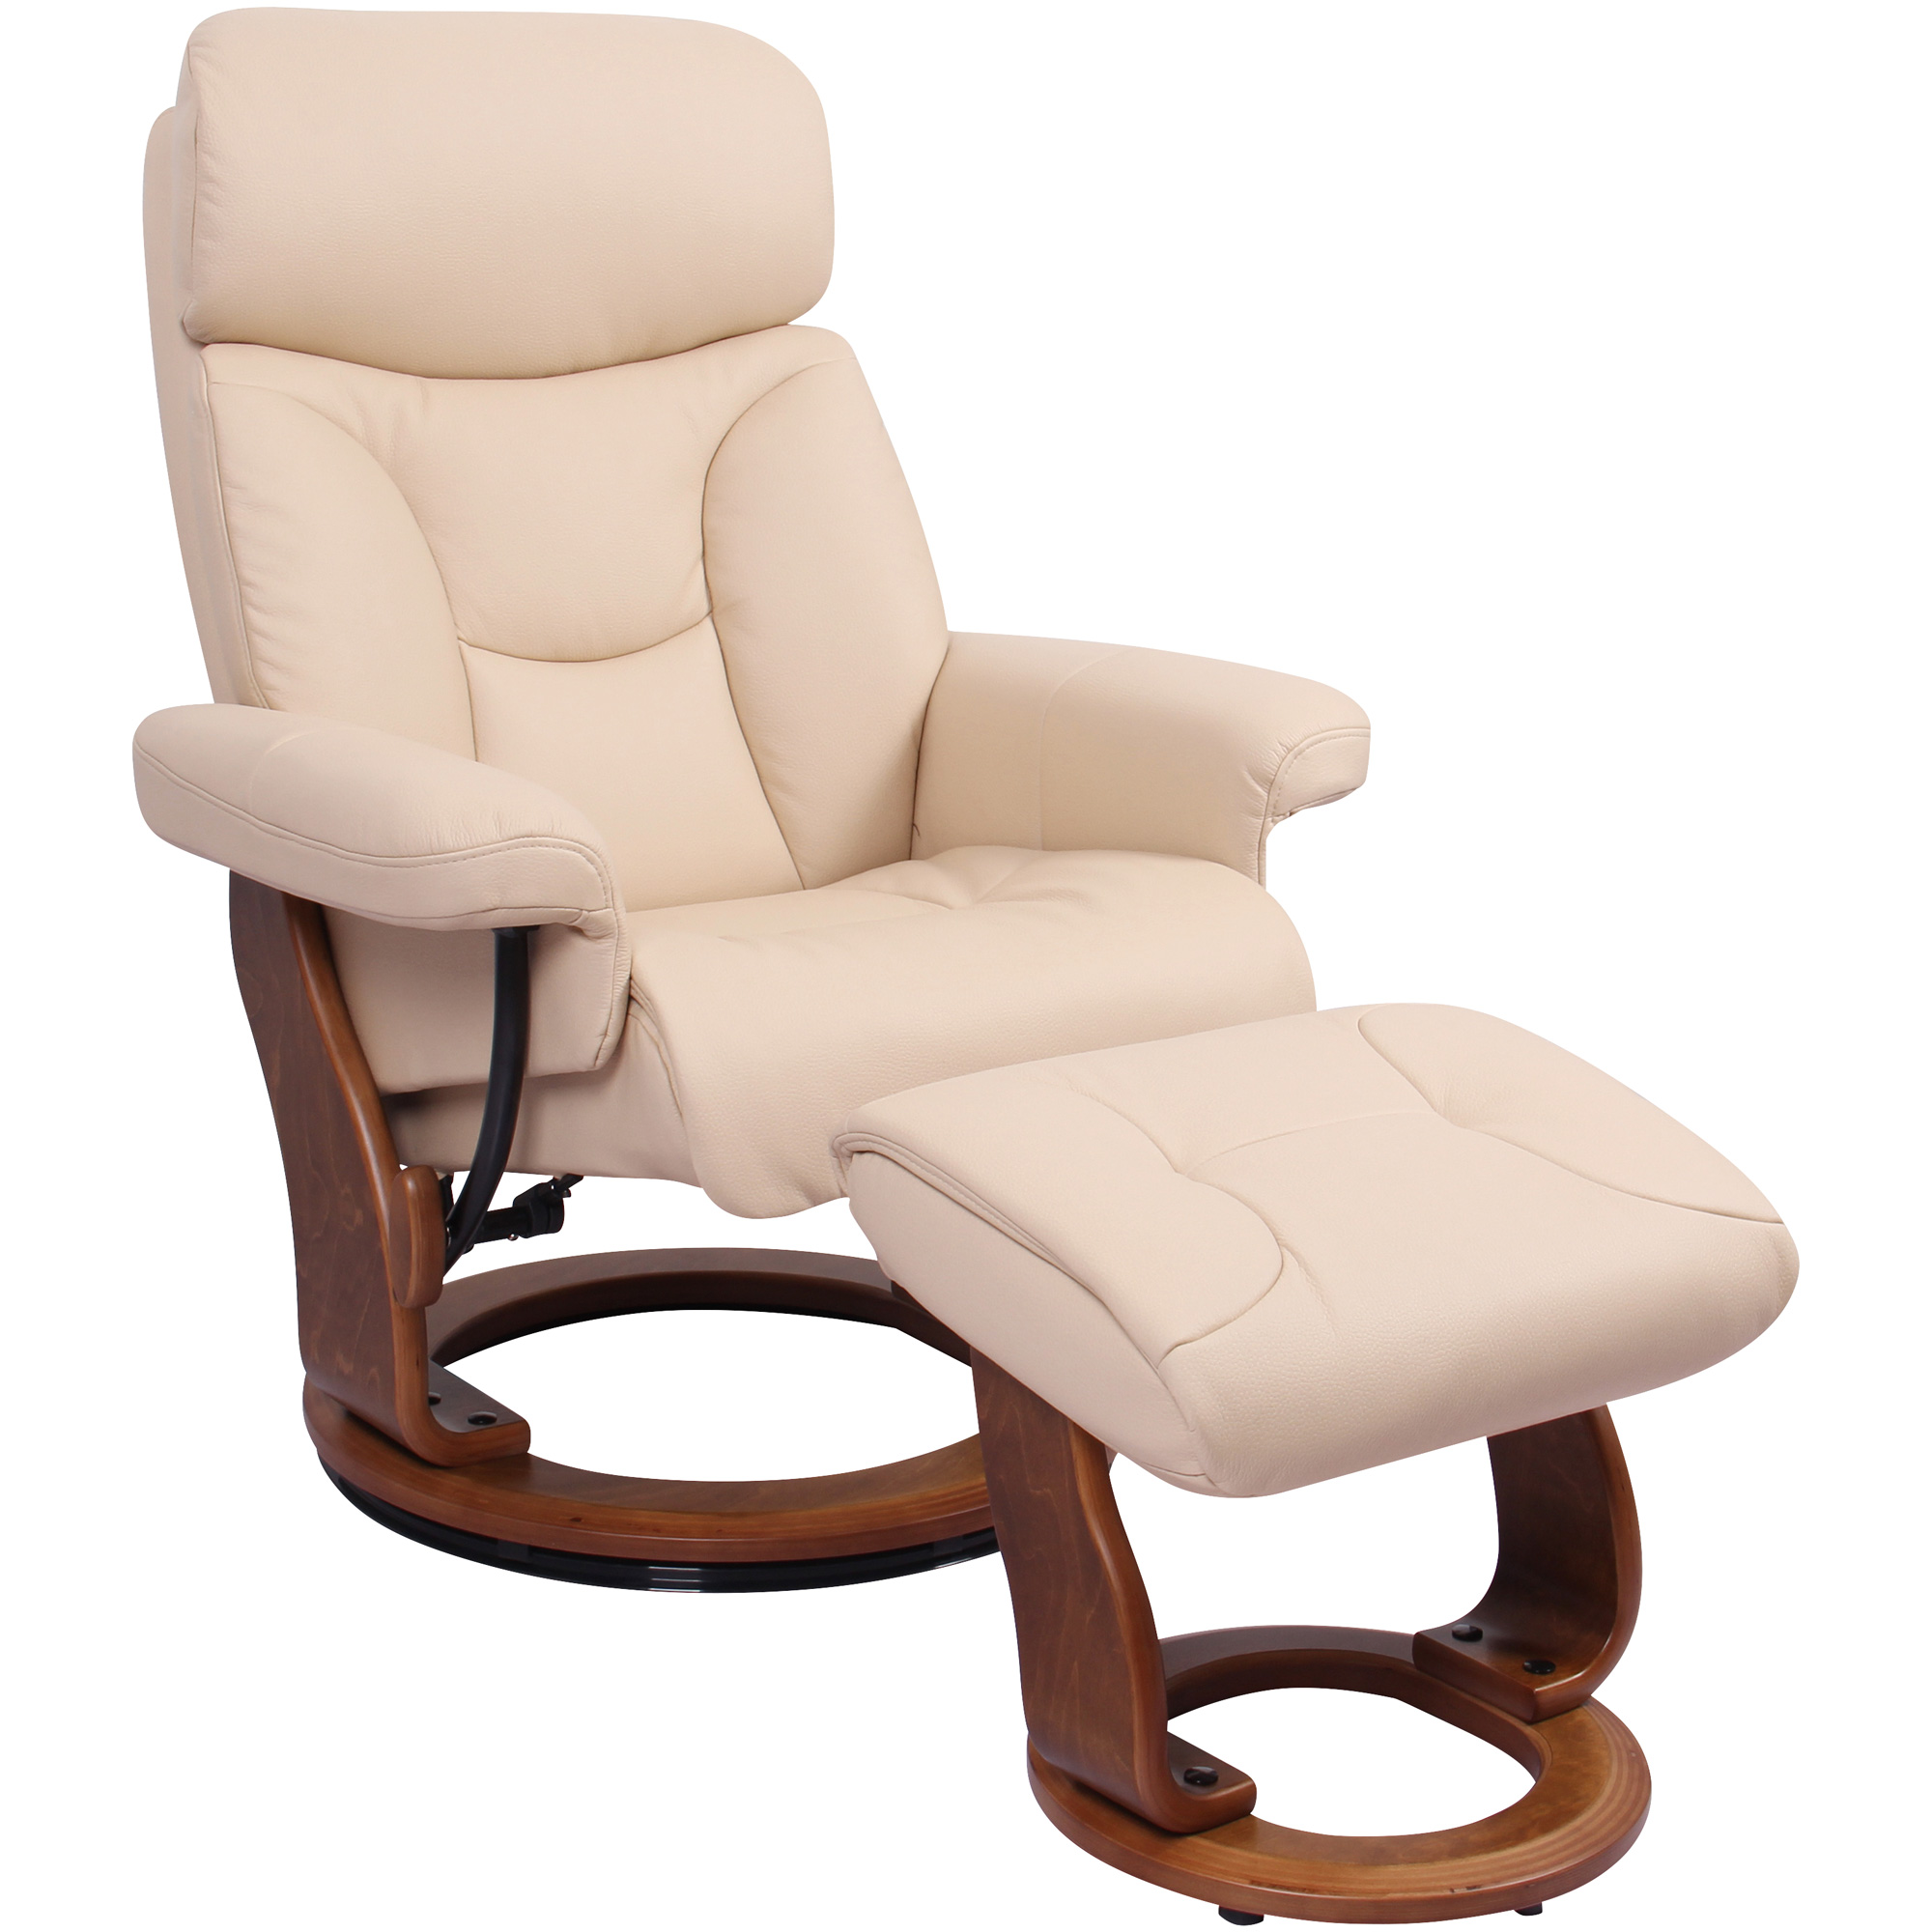 Benchmaster | Emmie Khaki Recliner Chair with Ottoman